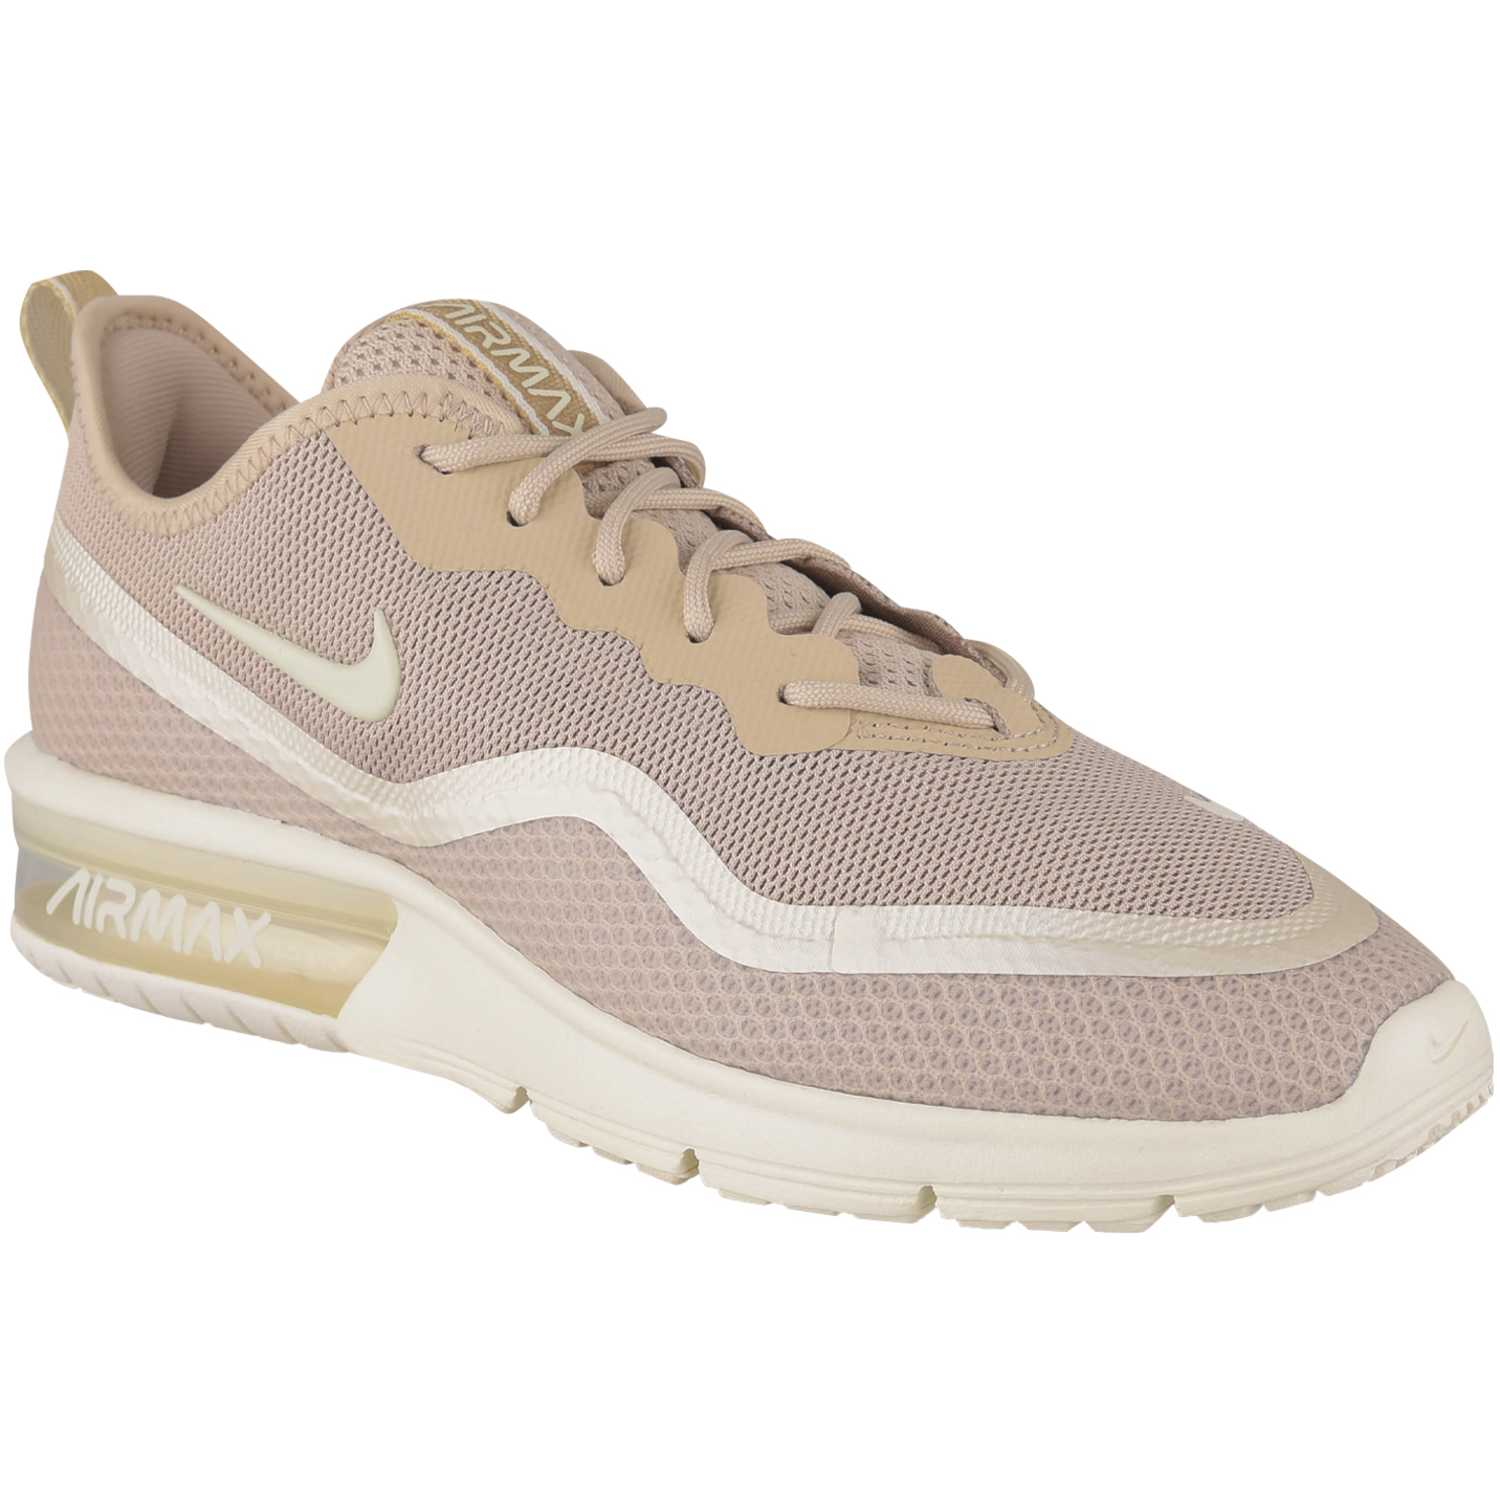 Deportivo de Mujer Nike Beige / blanco wmns nike airmax sequent 4.5 se